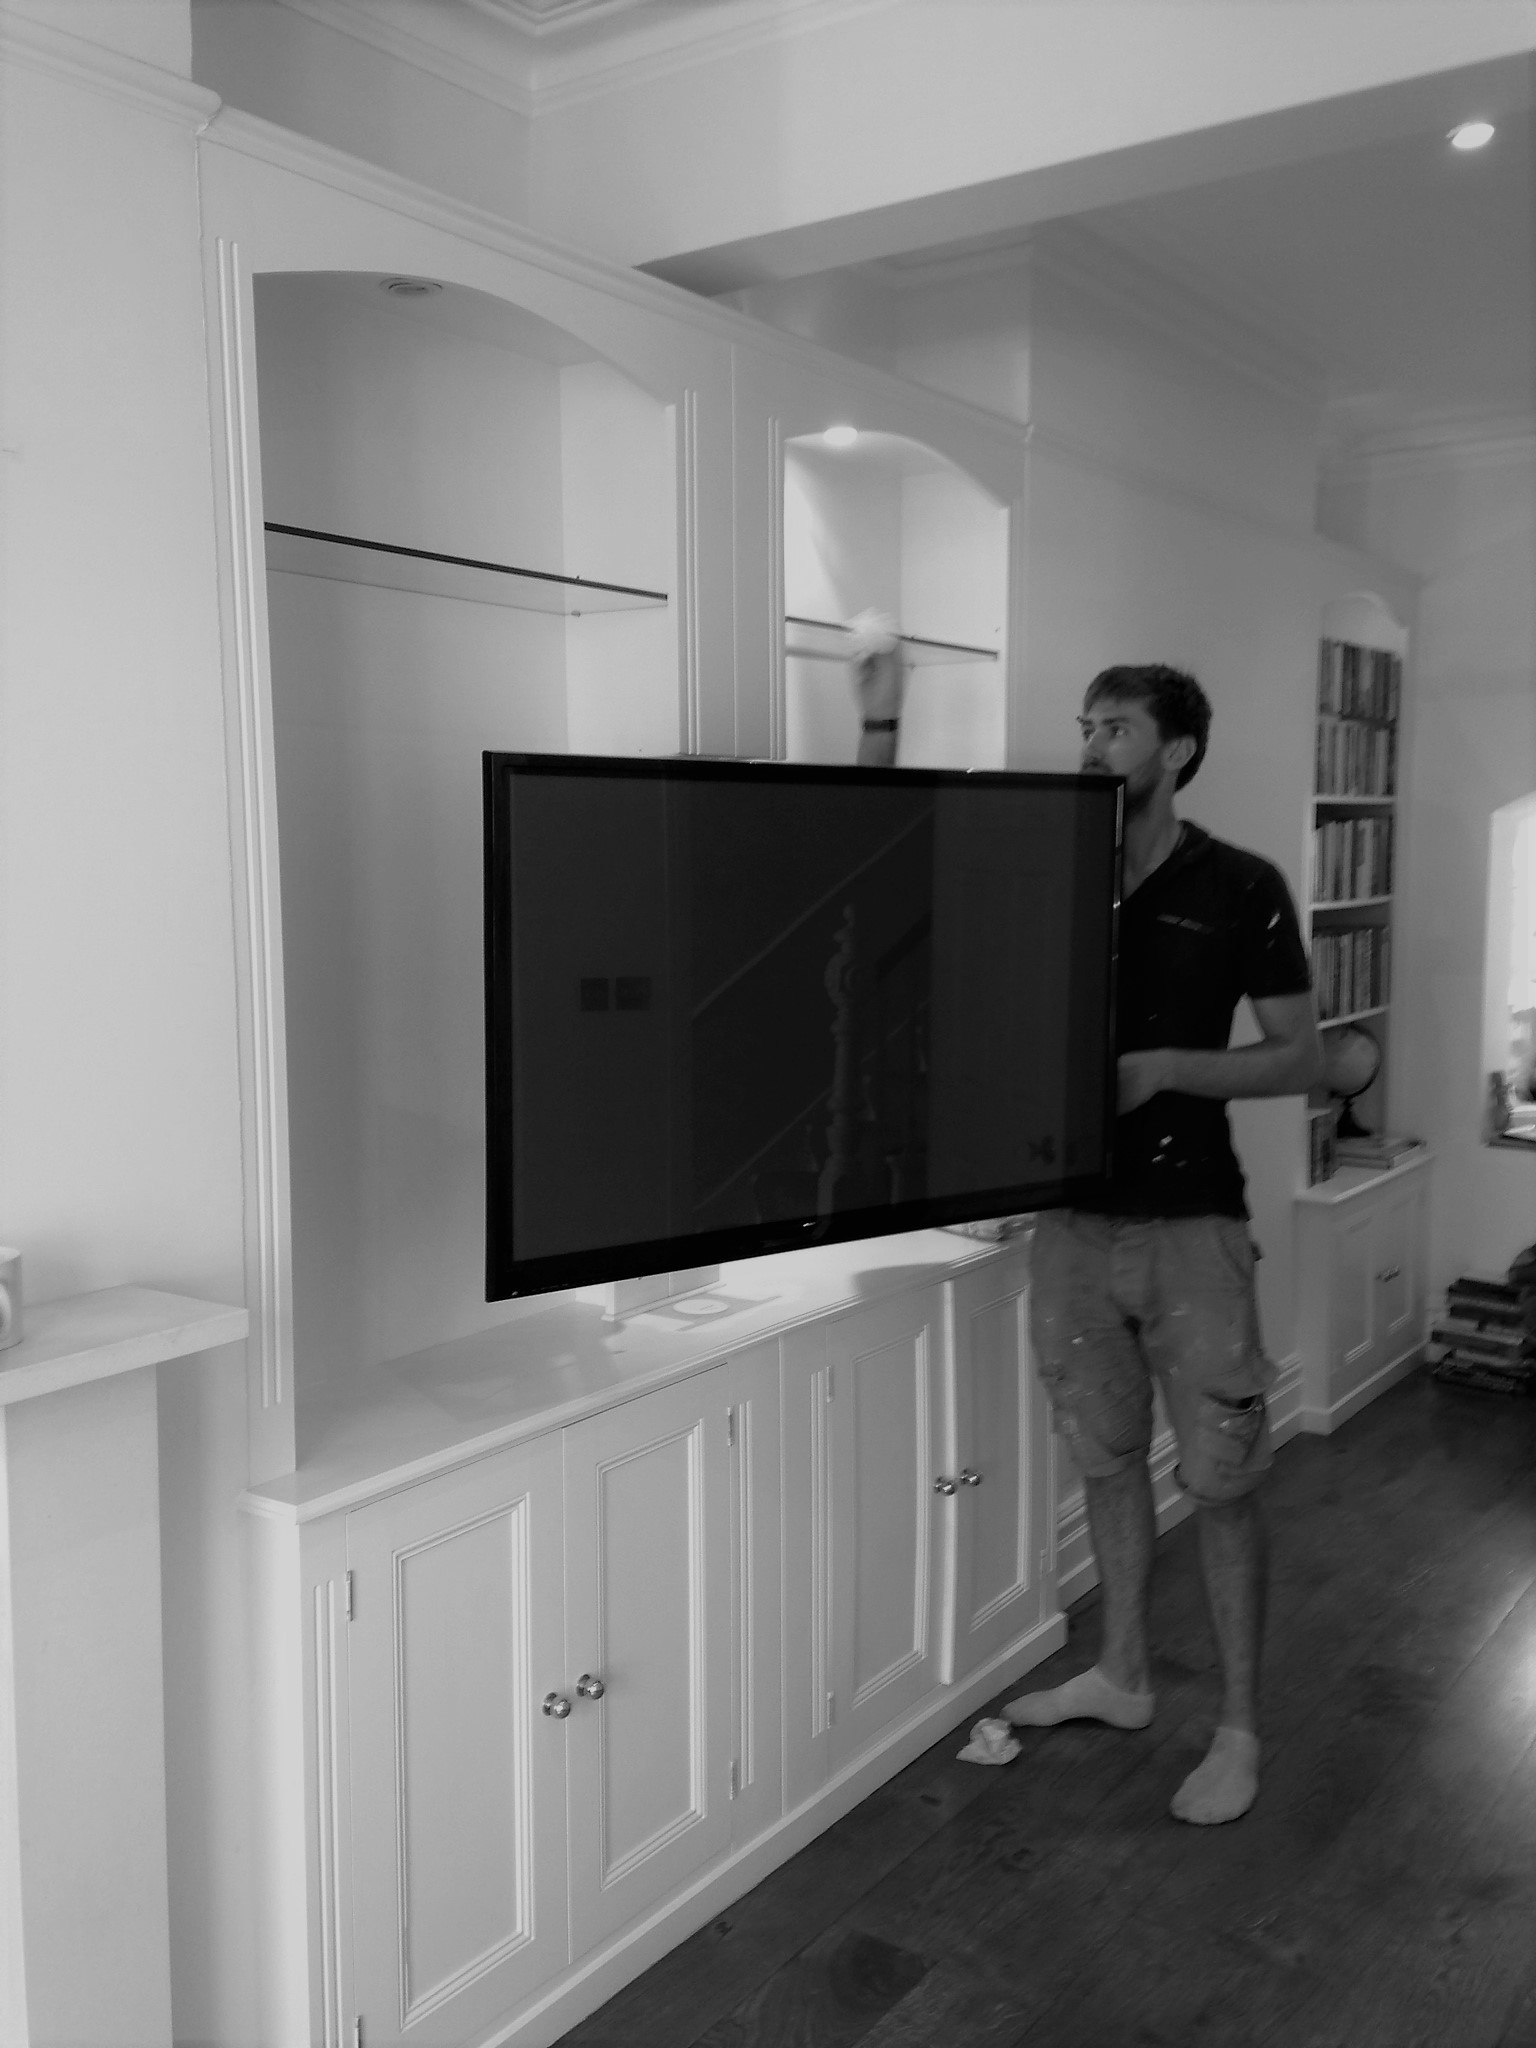 Many households are deciding to upgrade their Television. So the possibility of altering an existing unit to move forward with the times is never a problem.